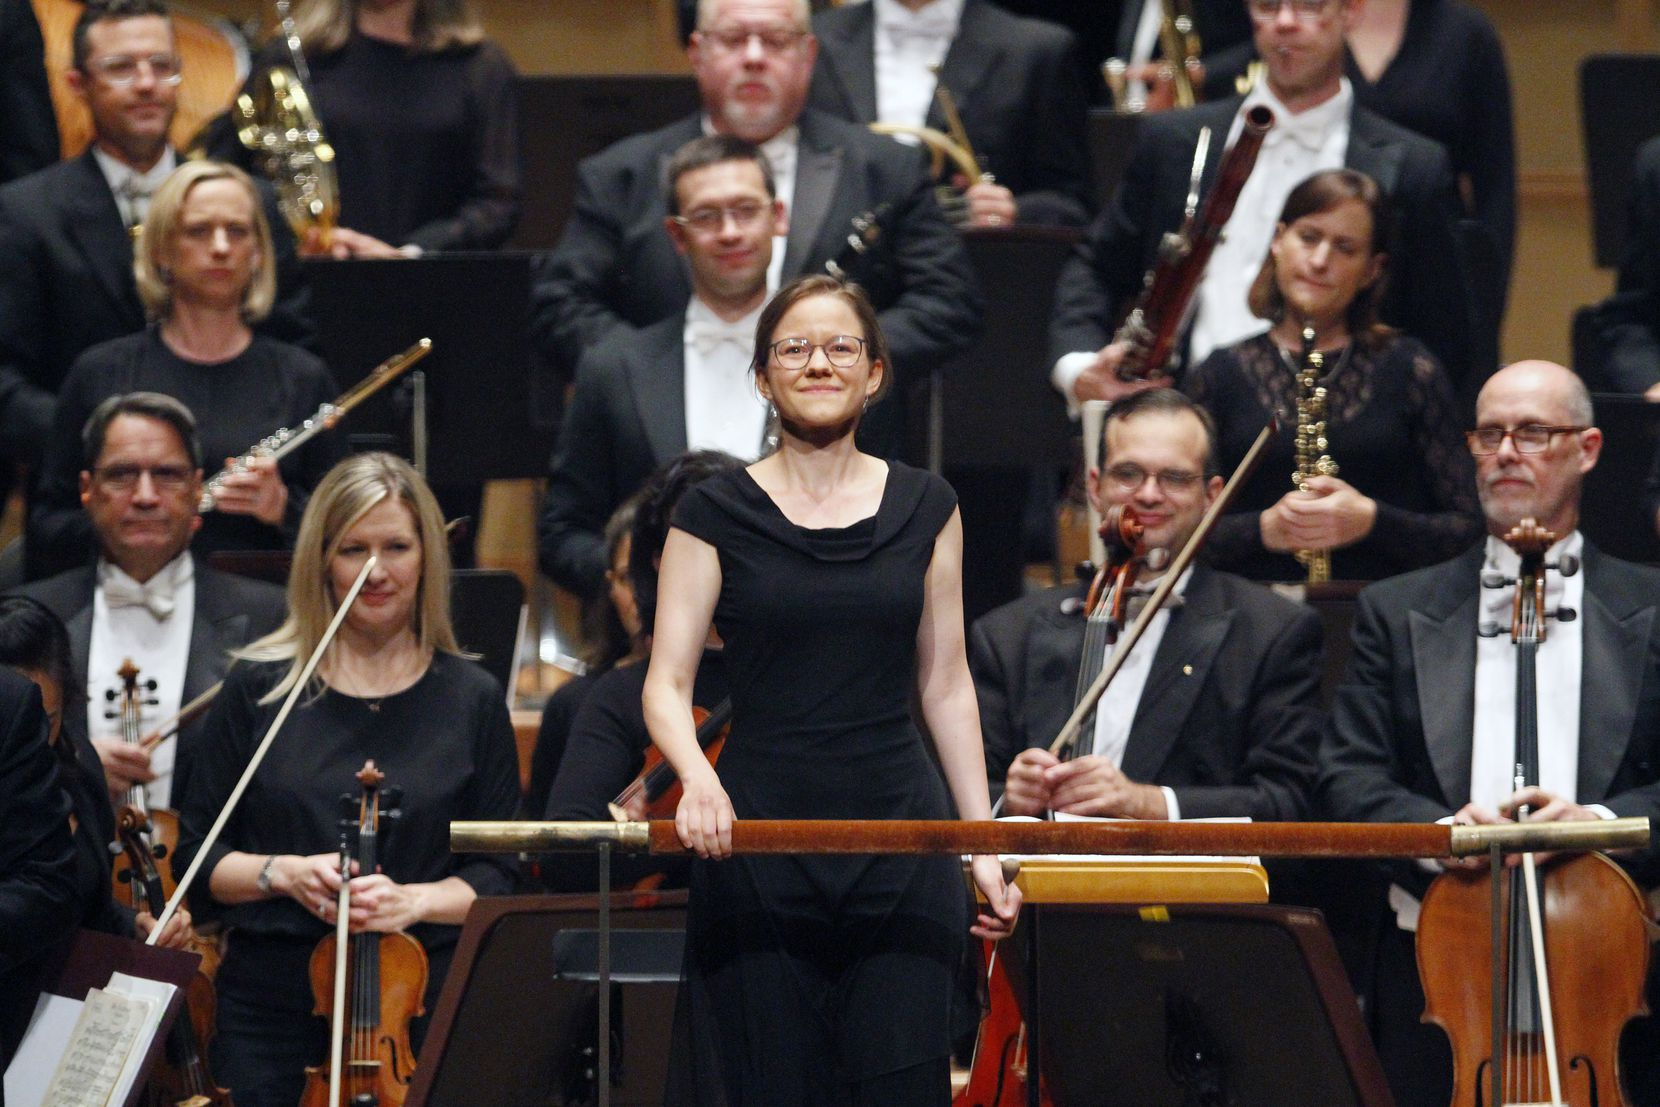 Conductor Katharina Wincor reacts with a smile as she's introduced to conduct the Dallas Symphony Orchestra during a debut at the Meyerson Symphony Center 30th Anniversary Concert, Wednesday, Sept. 04, 2019 at the Morton H. Meyerson Symphony Center.